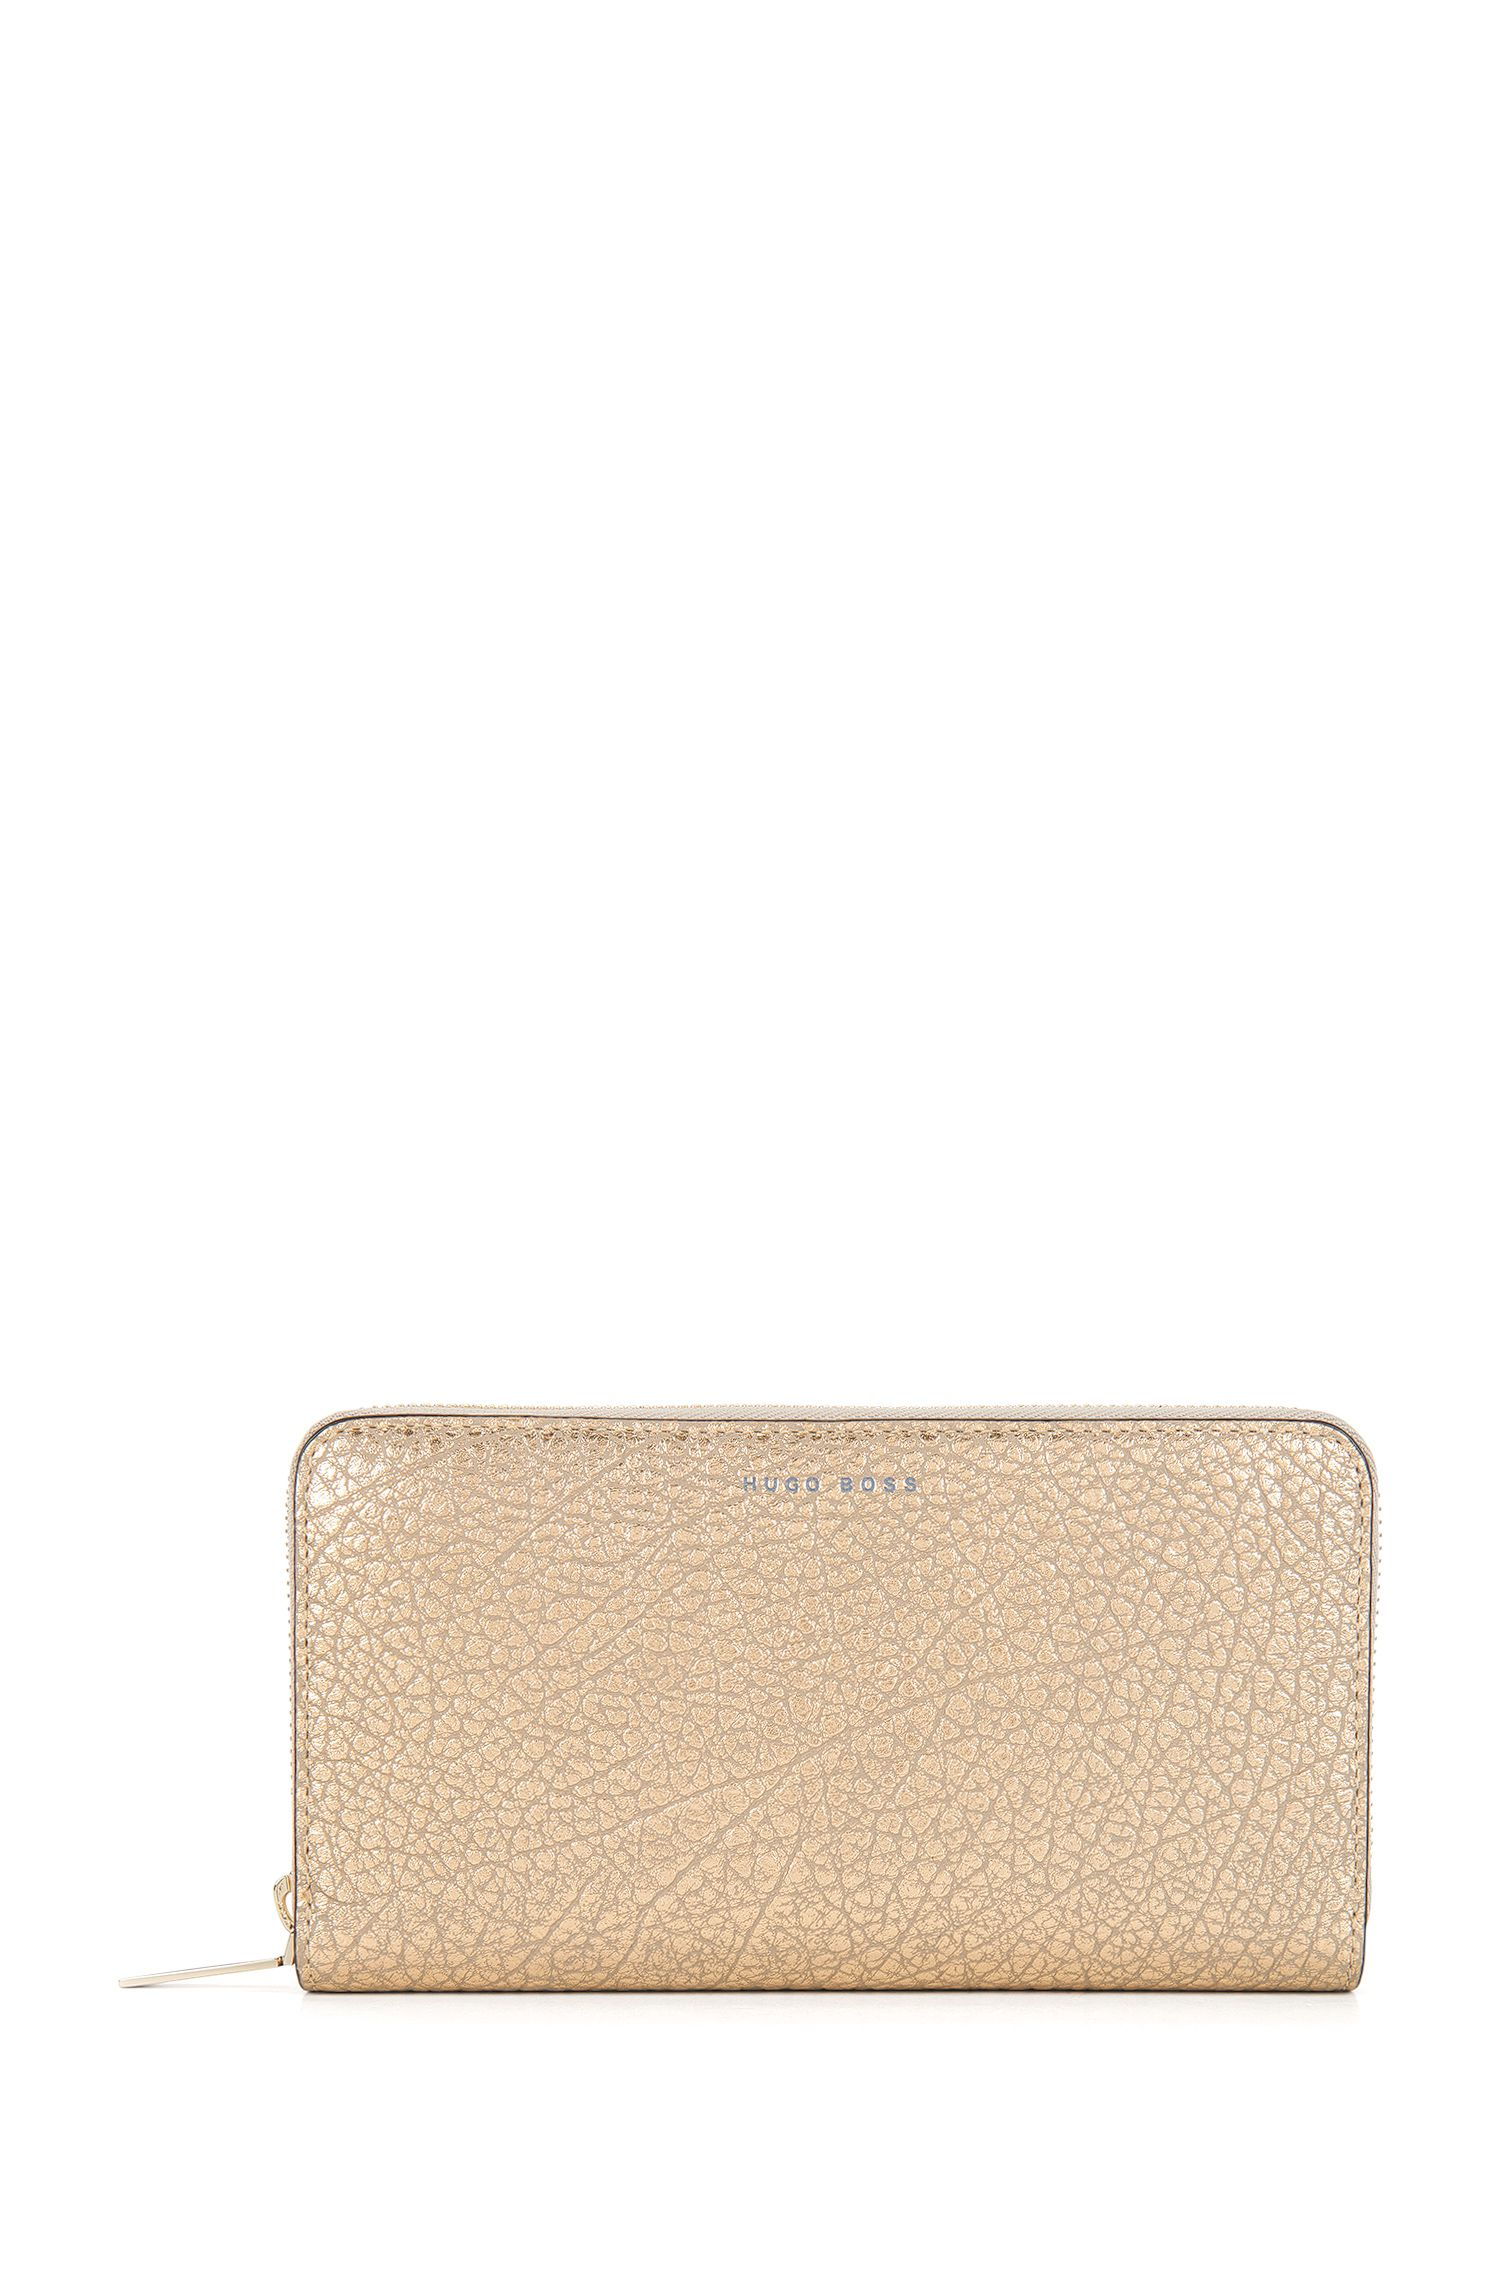 BOSS Bespoke Soft zip-around wallet in metallic grained leather